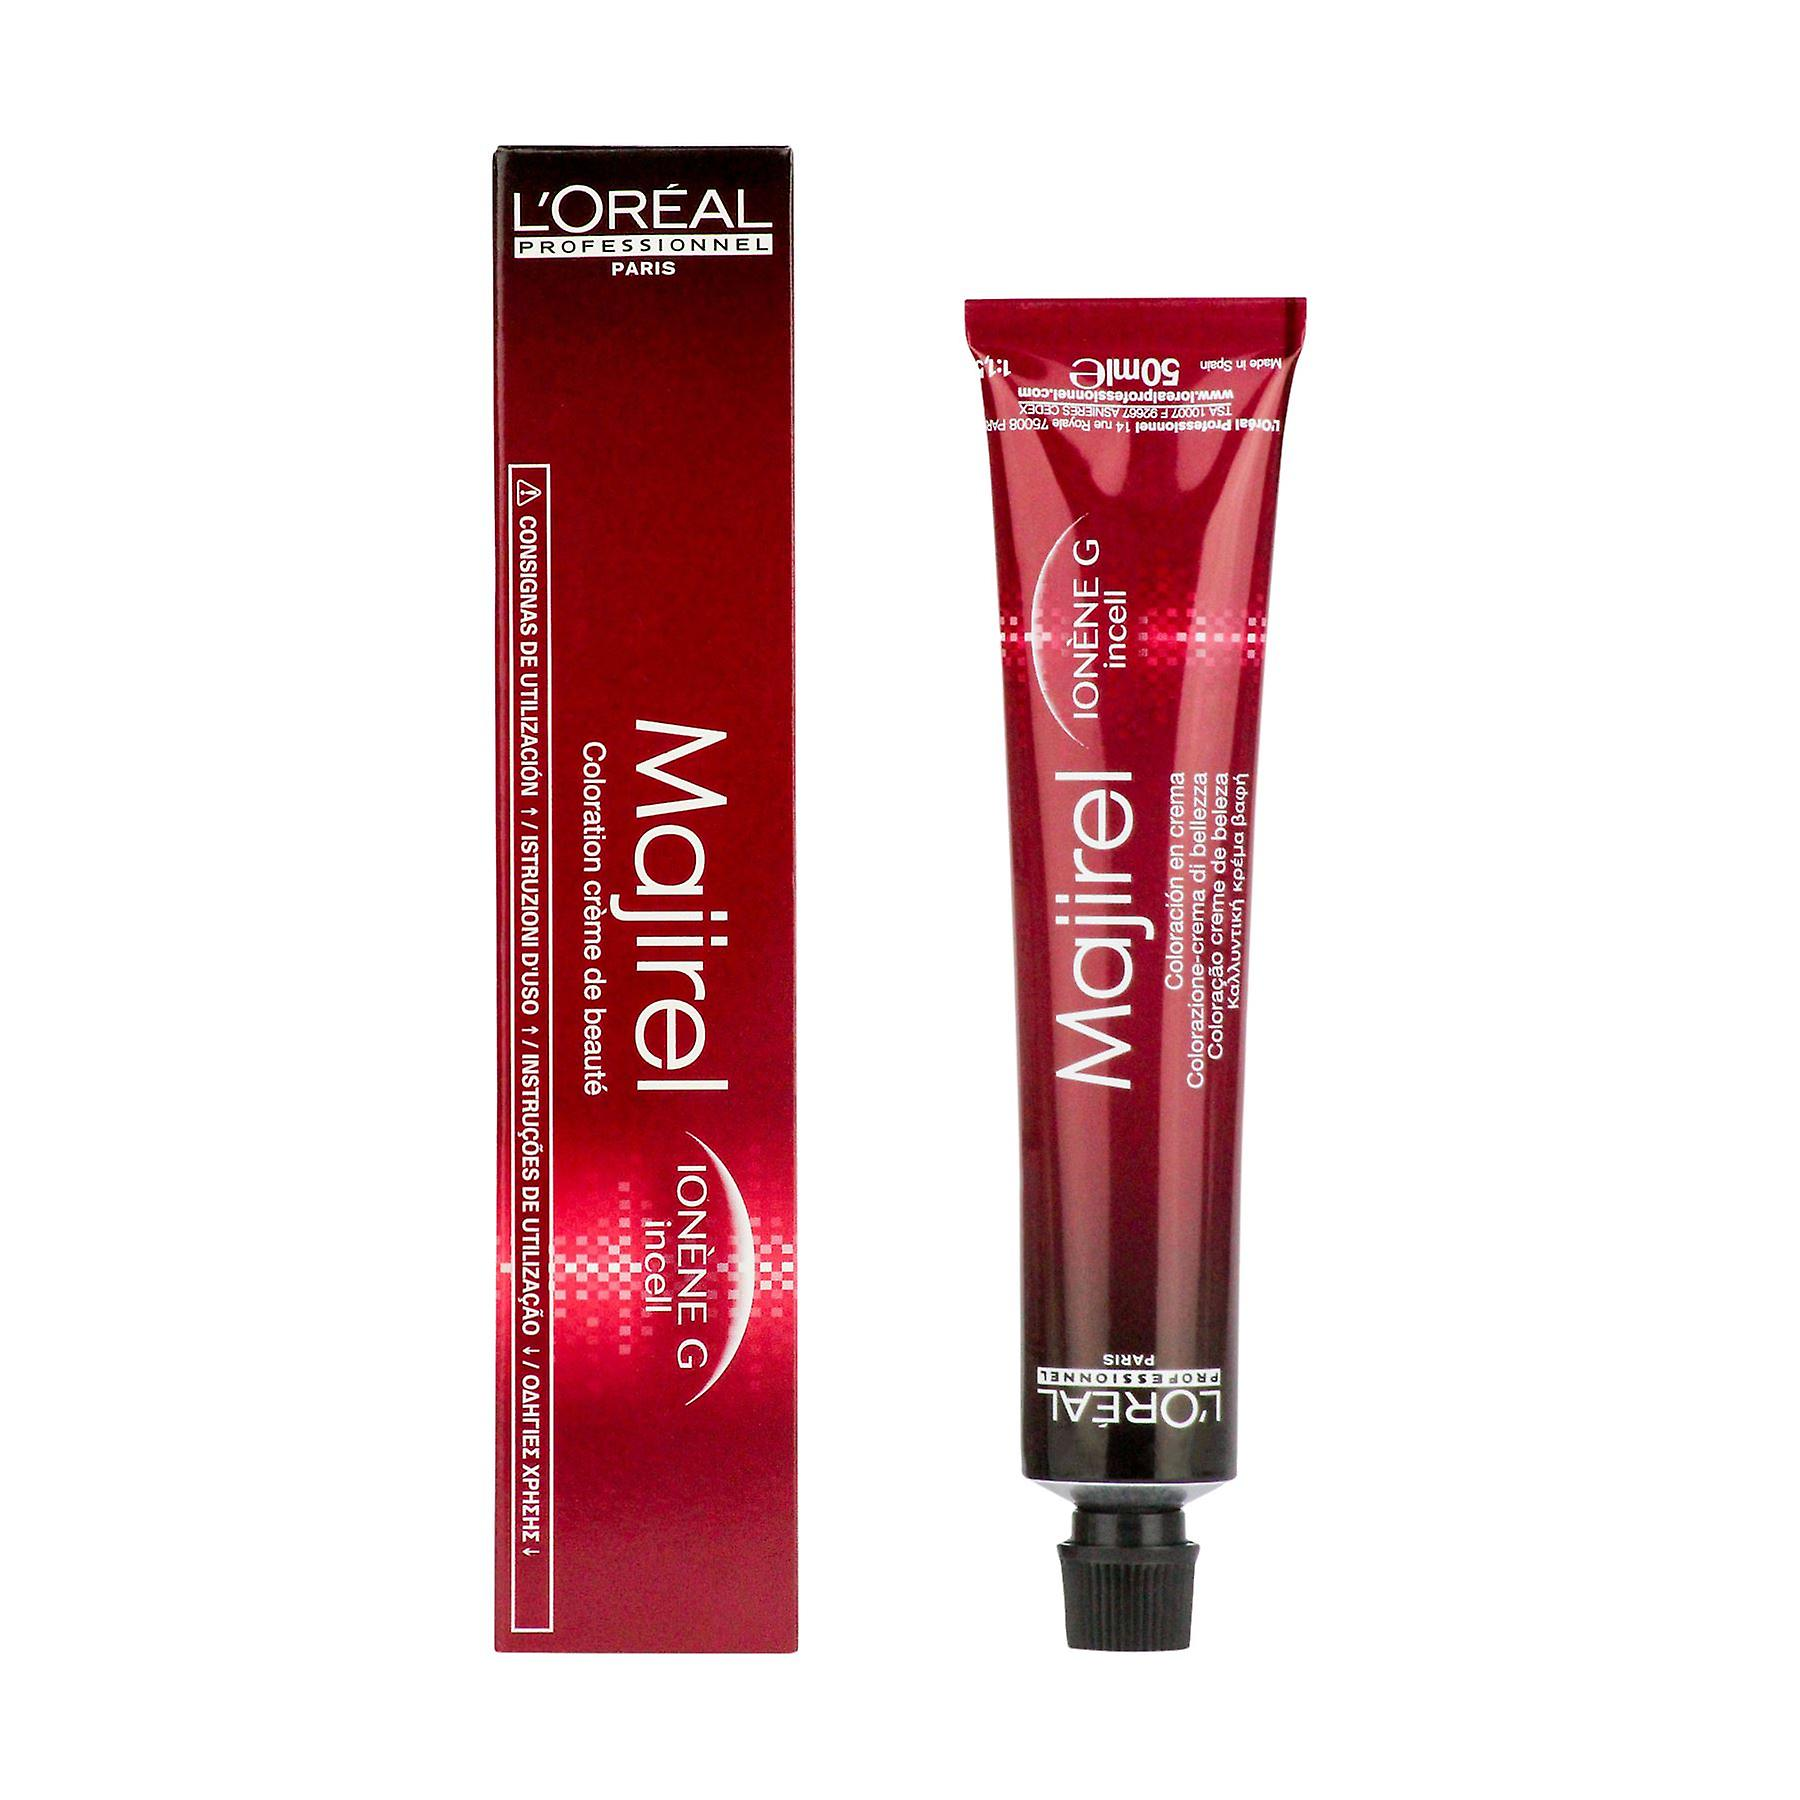 L'Oreal Professionnel Majirel 5, 0 Deep Light Brown 50ml